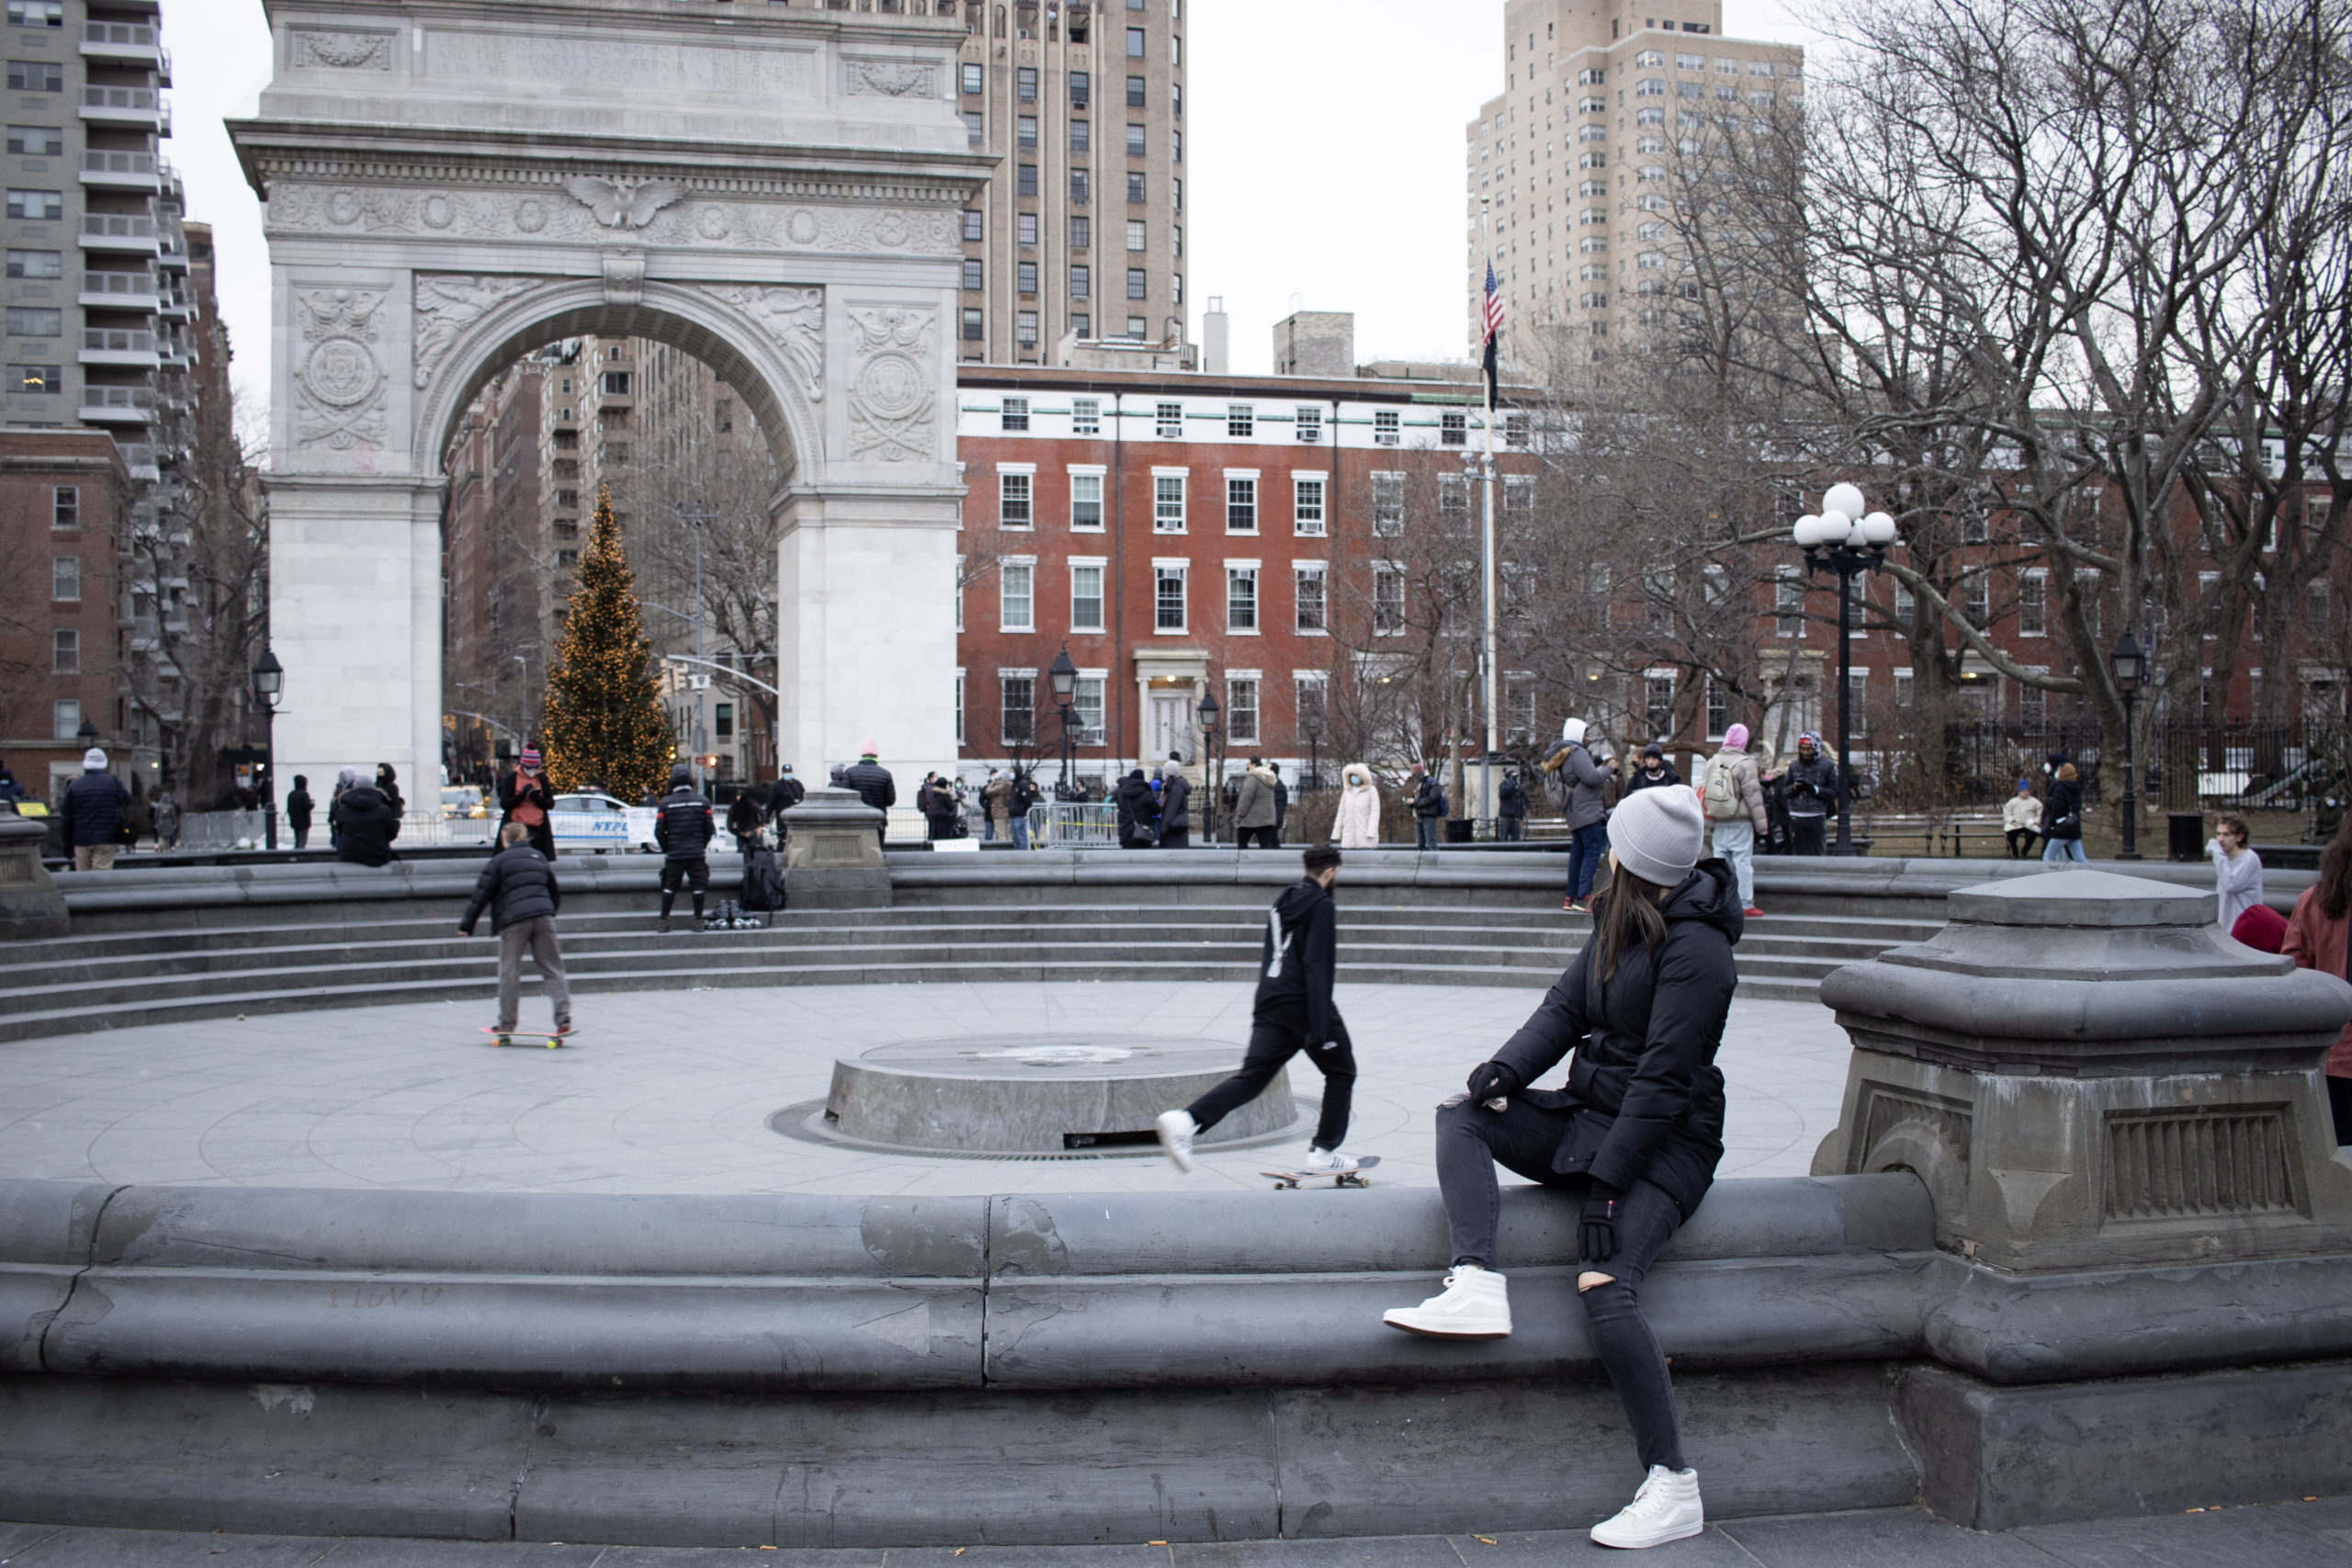 Women looking back on Washington Square Park, one of the Instagram spots in NYC